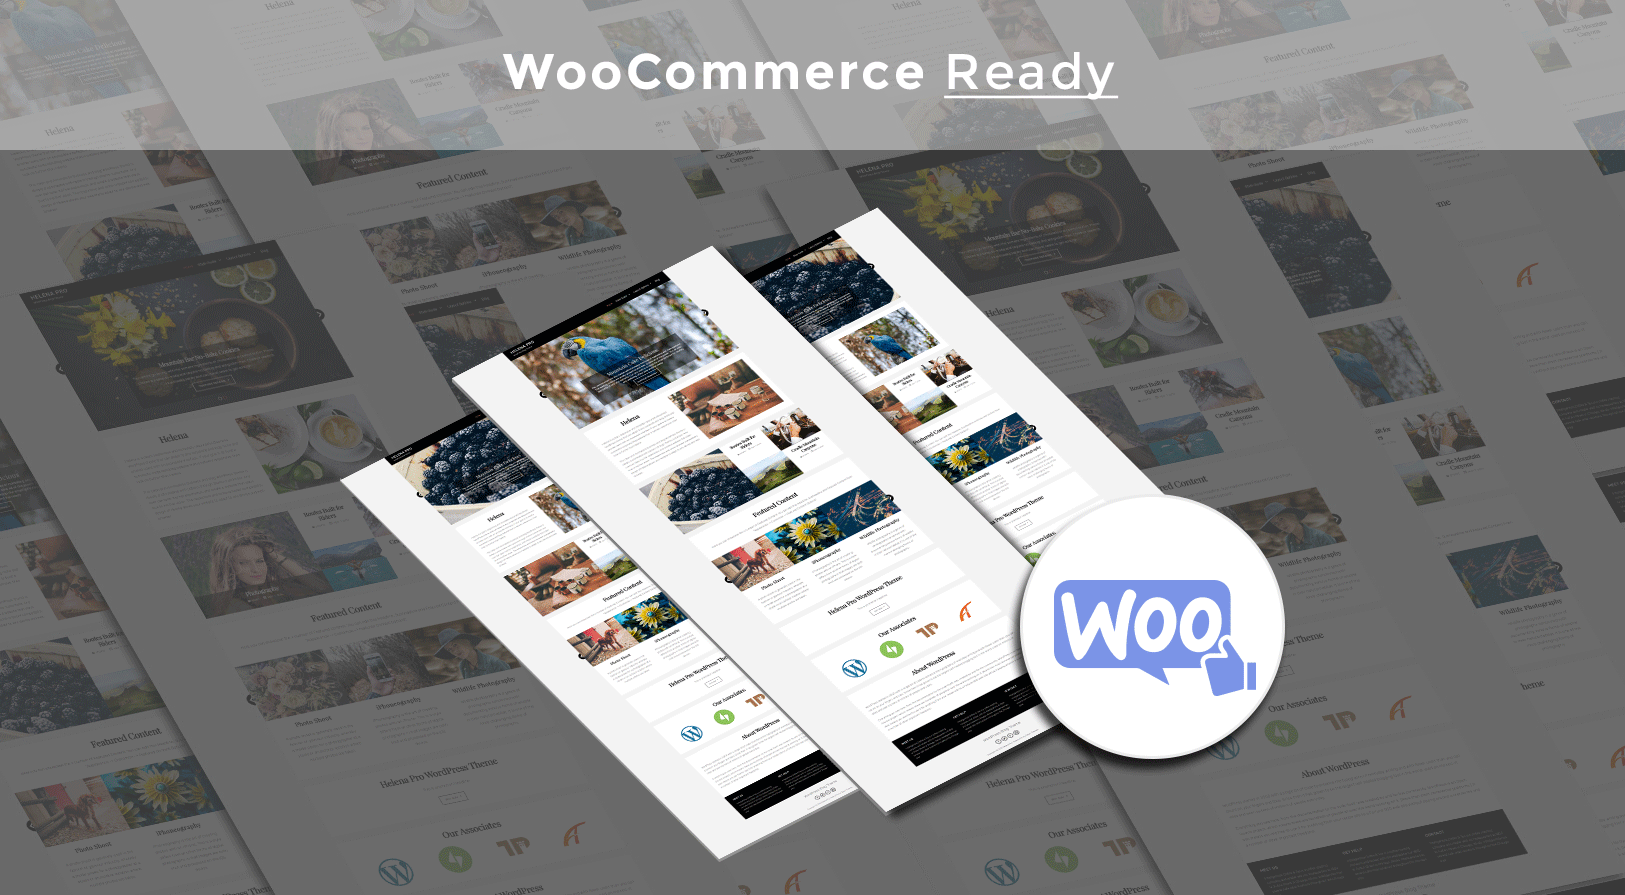 woocommerce_ready